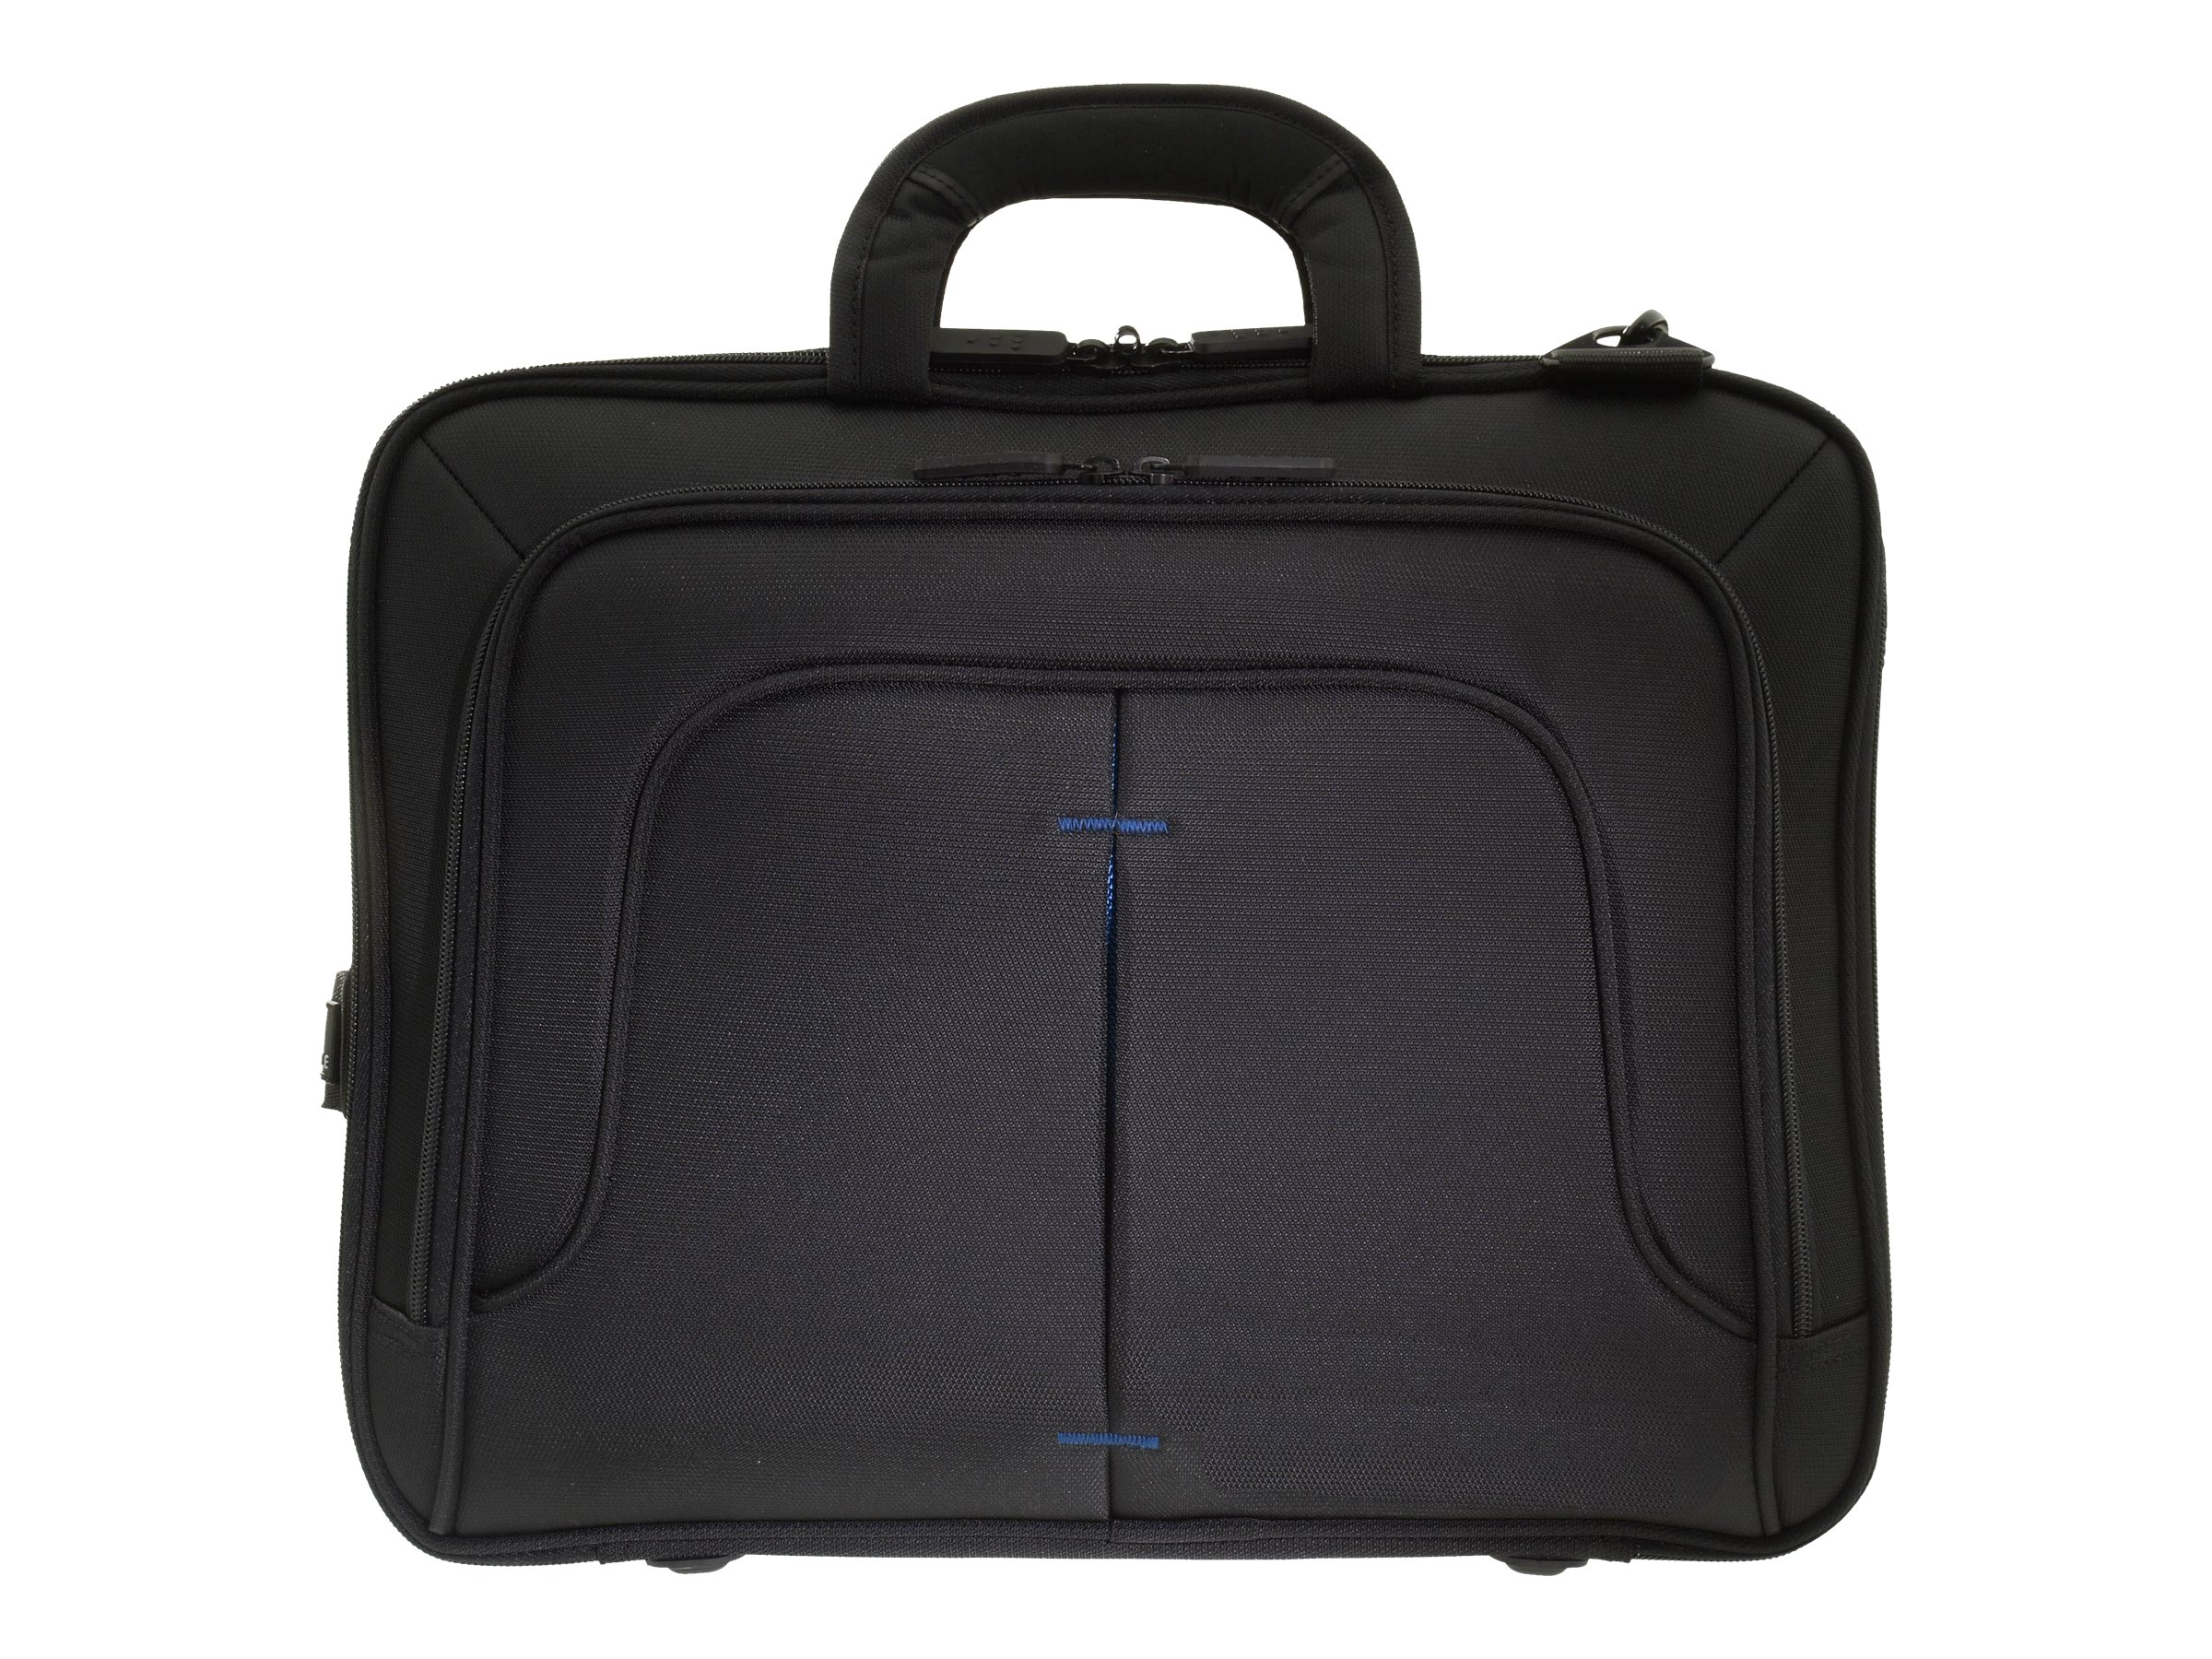 Eco Style Tech Pro Topload Case, Checkpoint Friendly, Blue